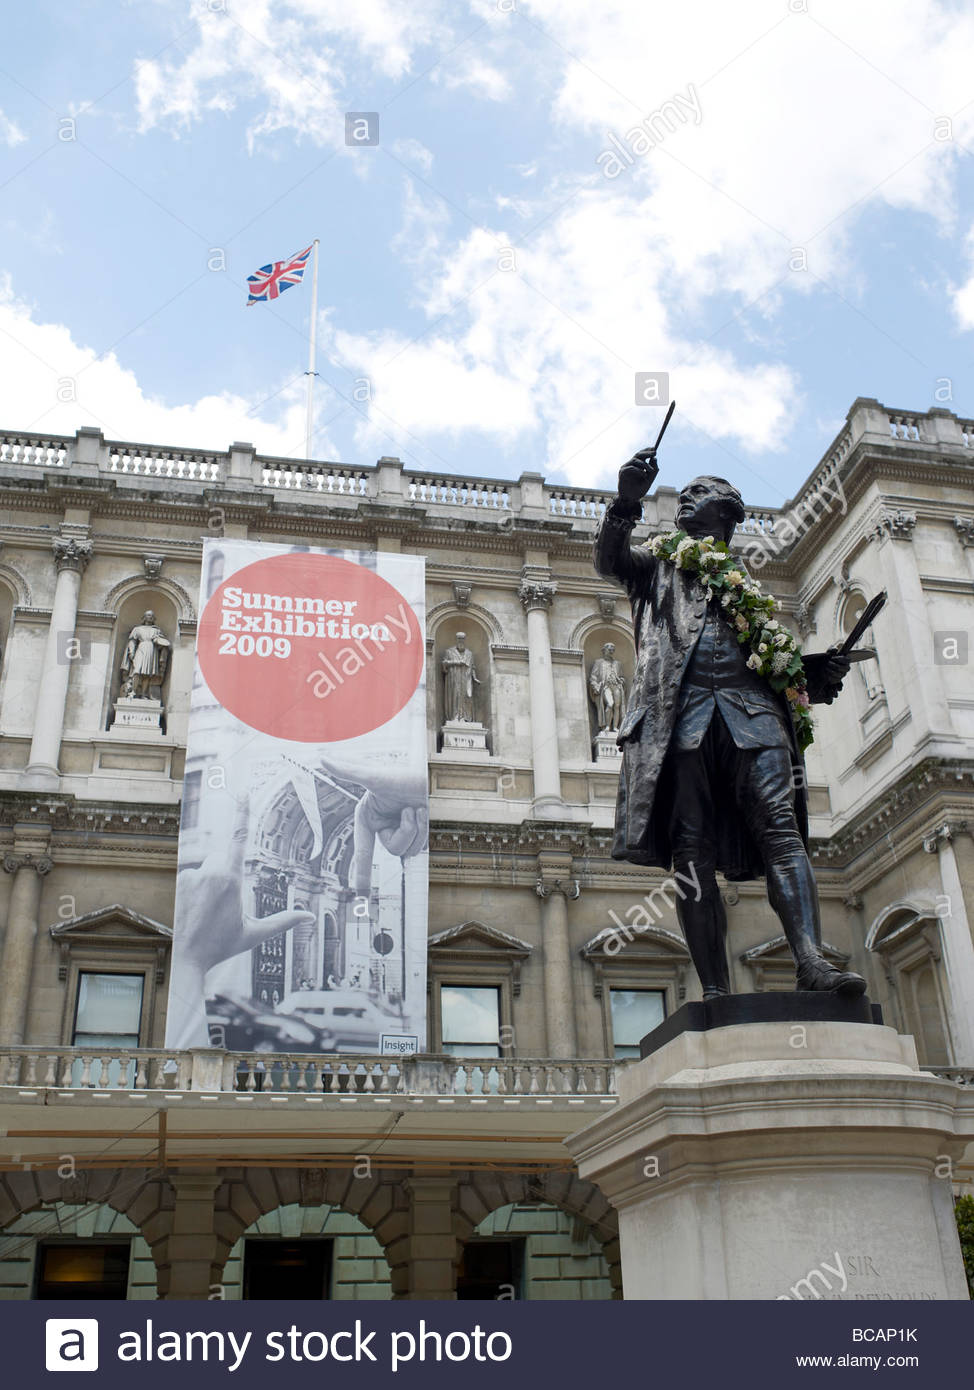 Royal Academy of Arts in London entrance and archway., Burlington House in Picadilly. Stock Photo